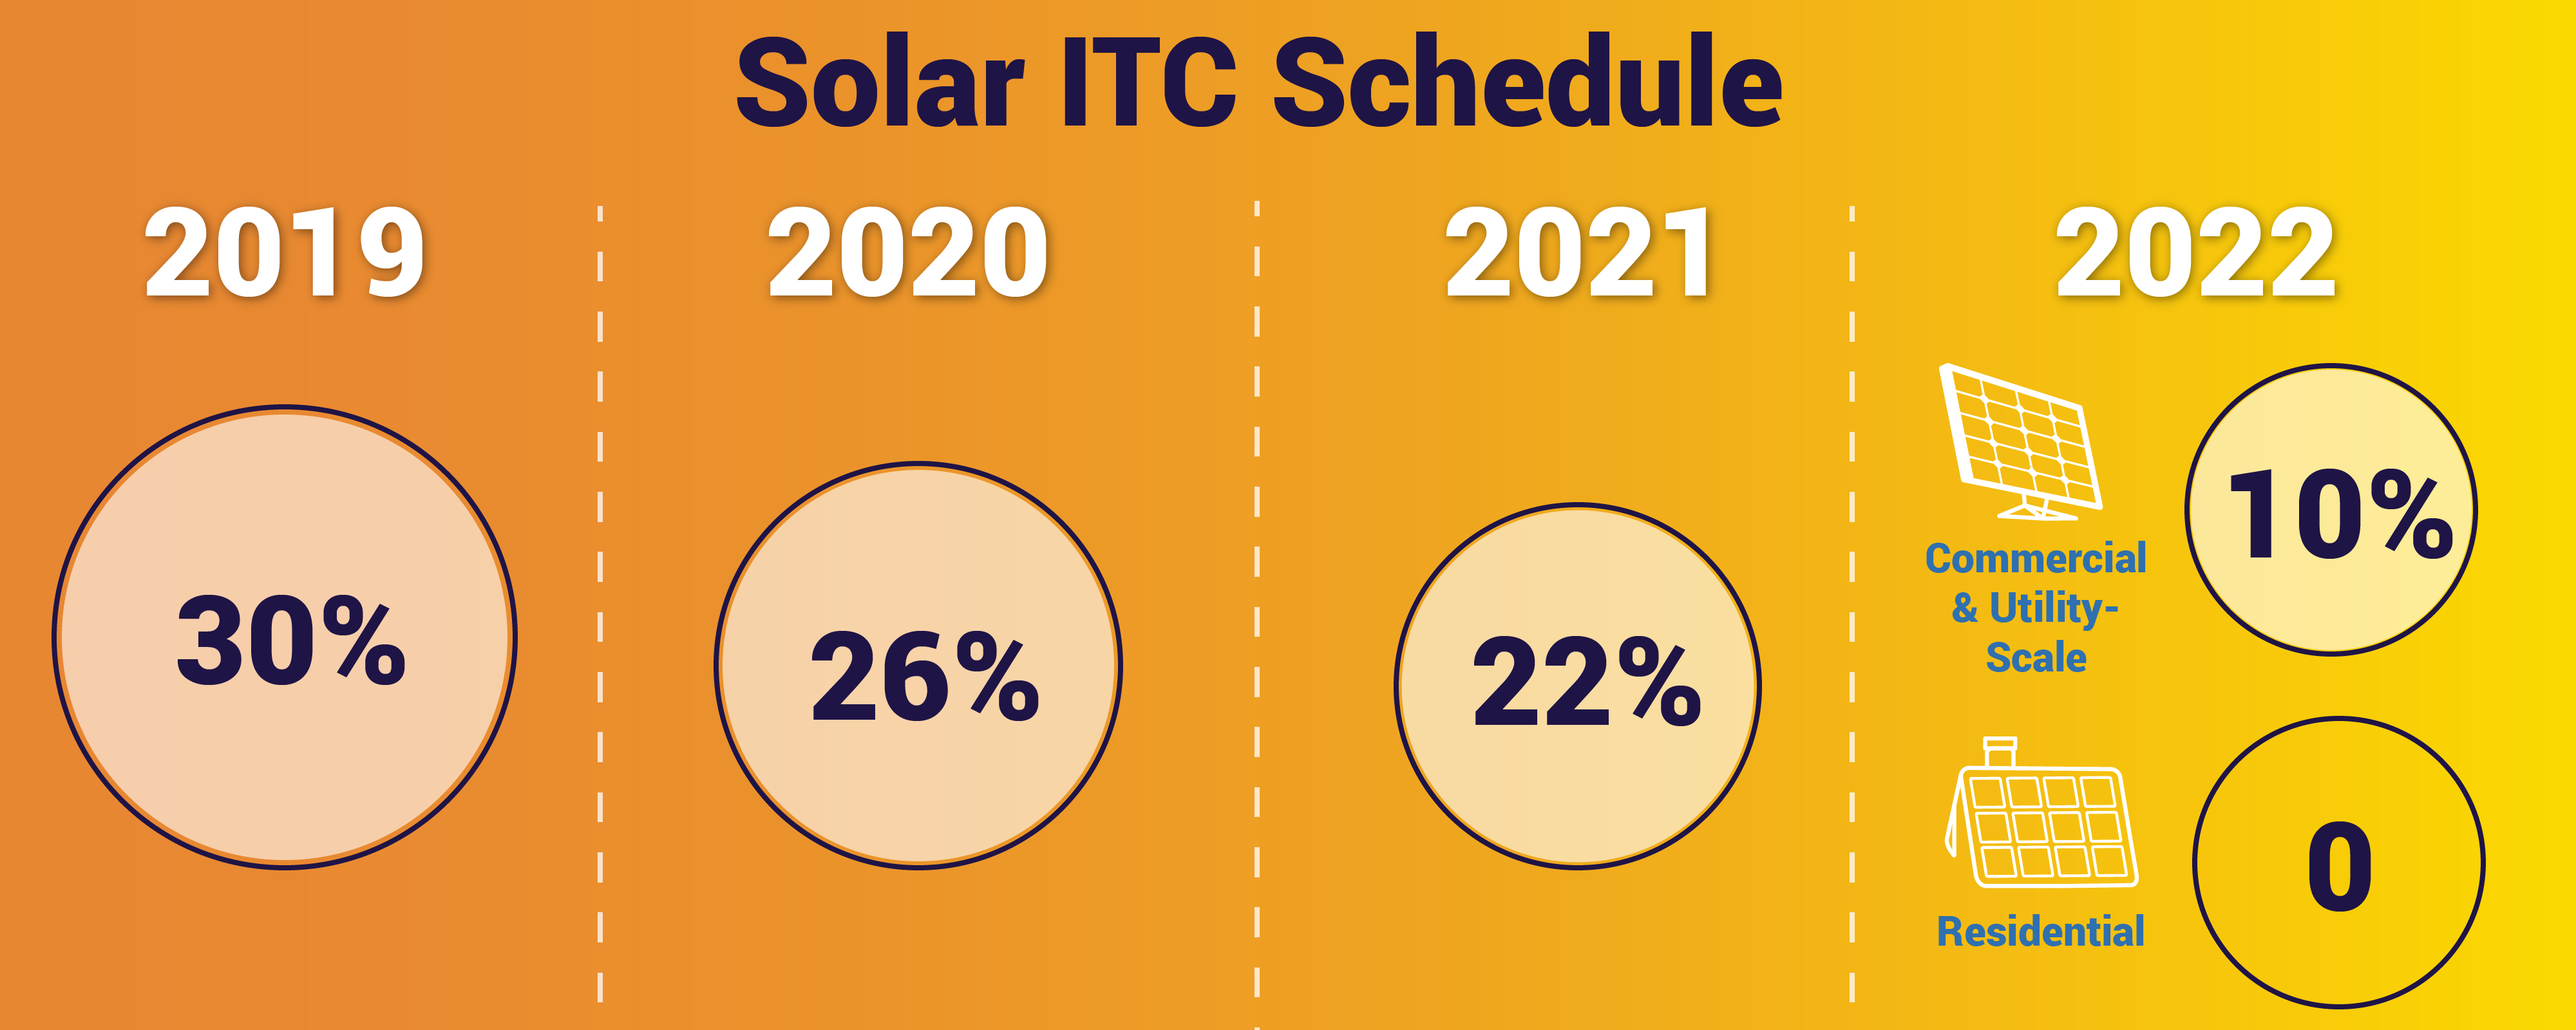 solar investment tax credit itc schedule 2019-2023